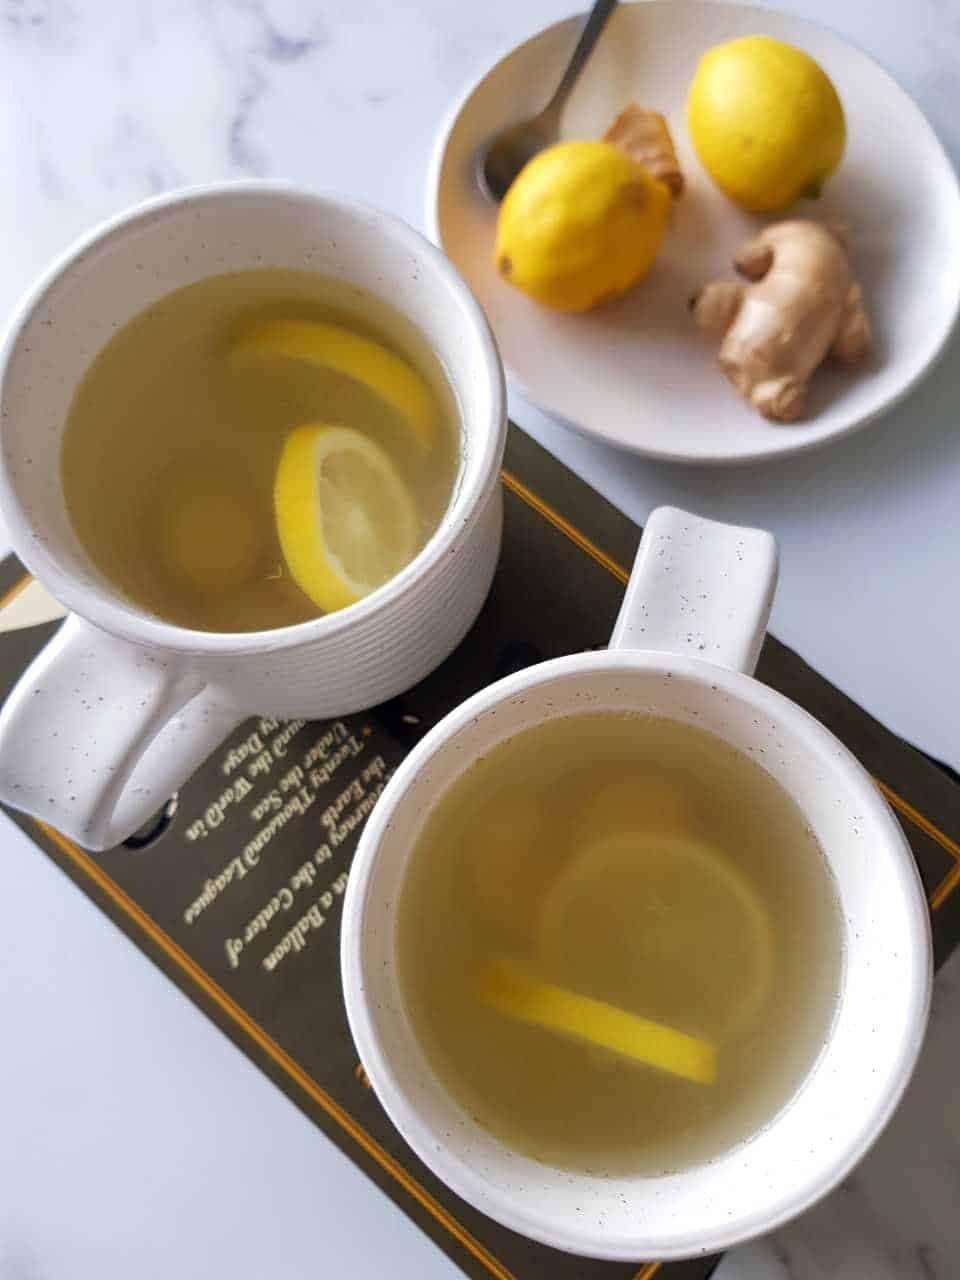 Hot lemon and ginger drink in cups on top of a book on a marble table.